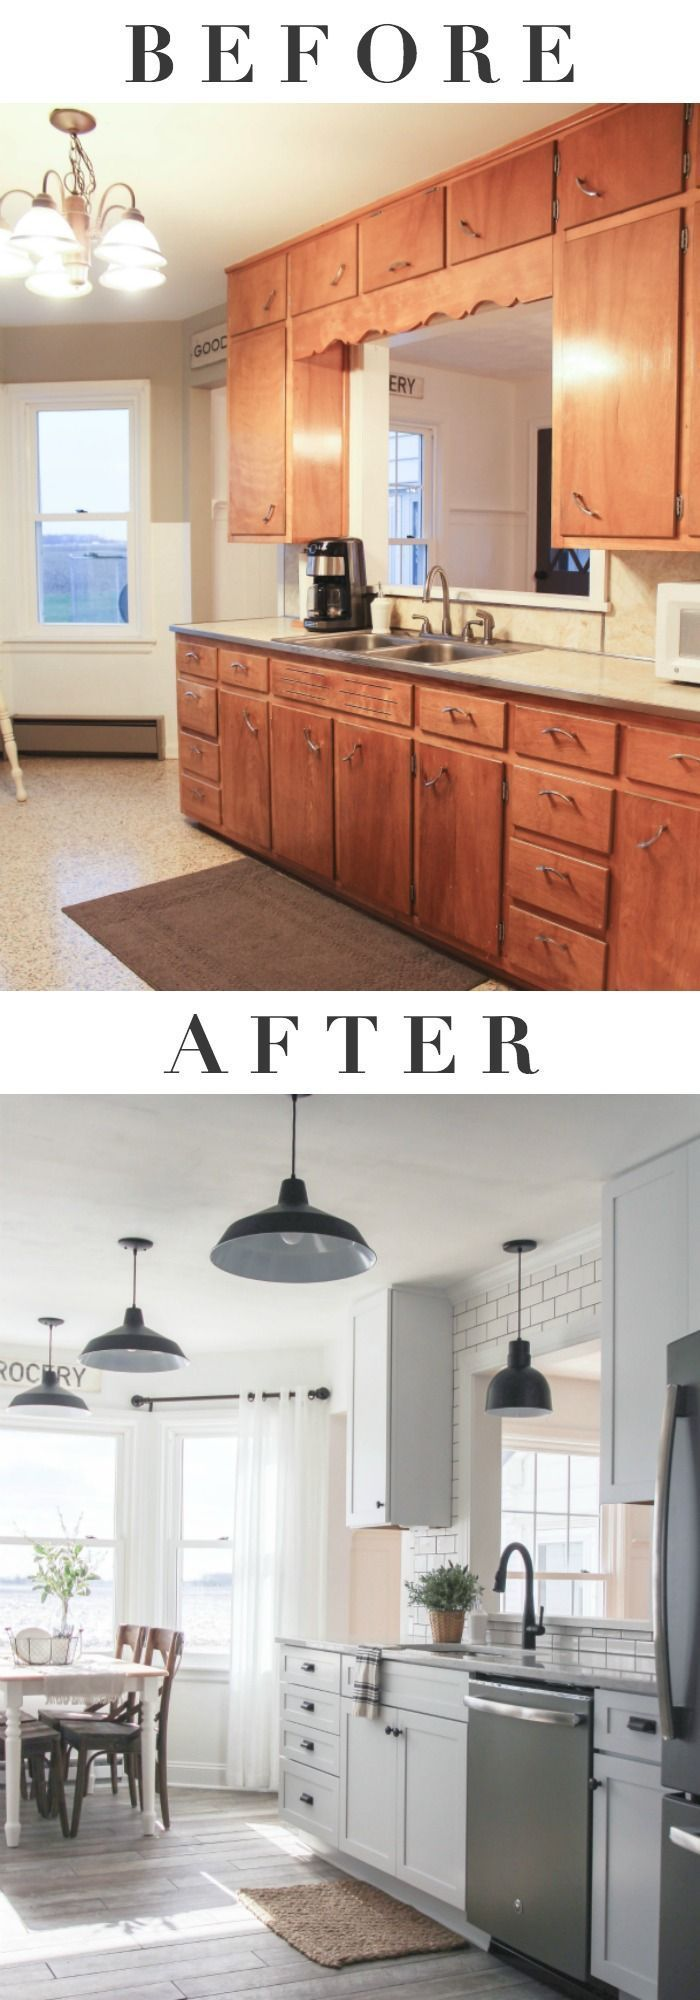 This Indiana farmhouse got a BIG kitchen makeover! Click to see more incredible before and after photos! http://LoveGrowsWild.com